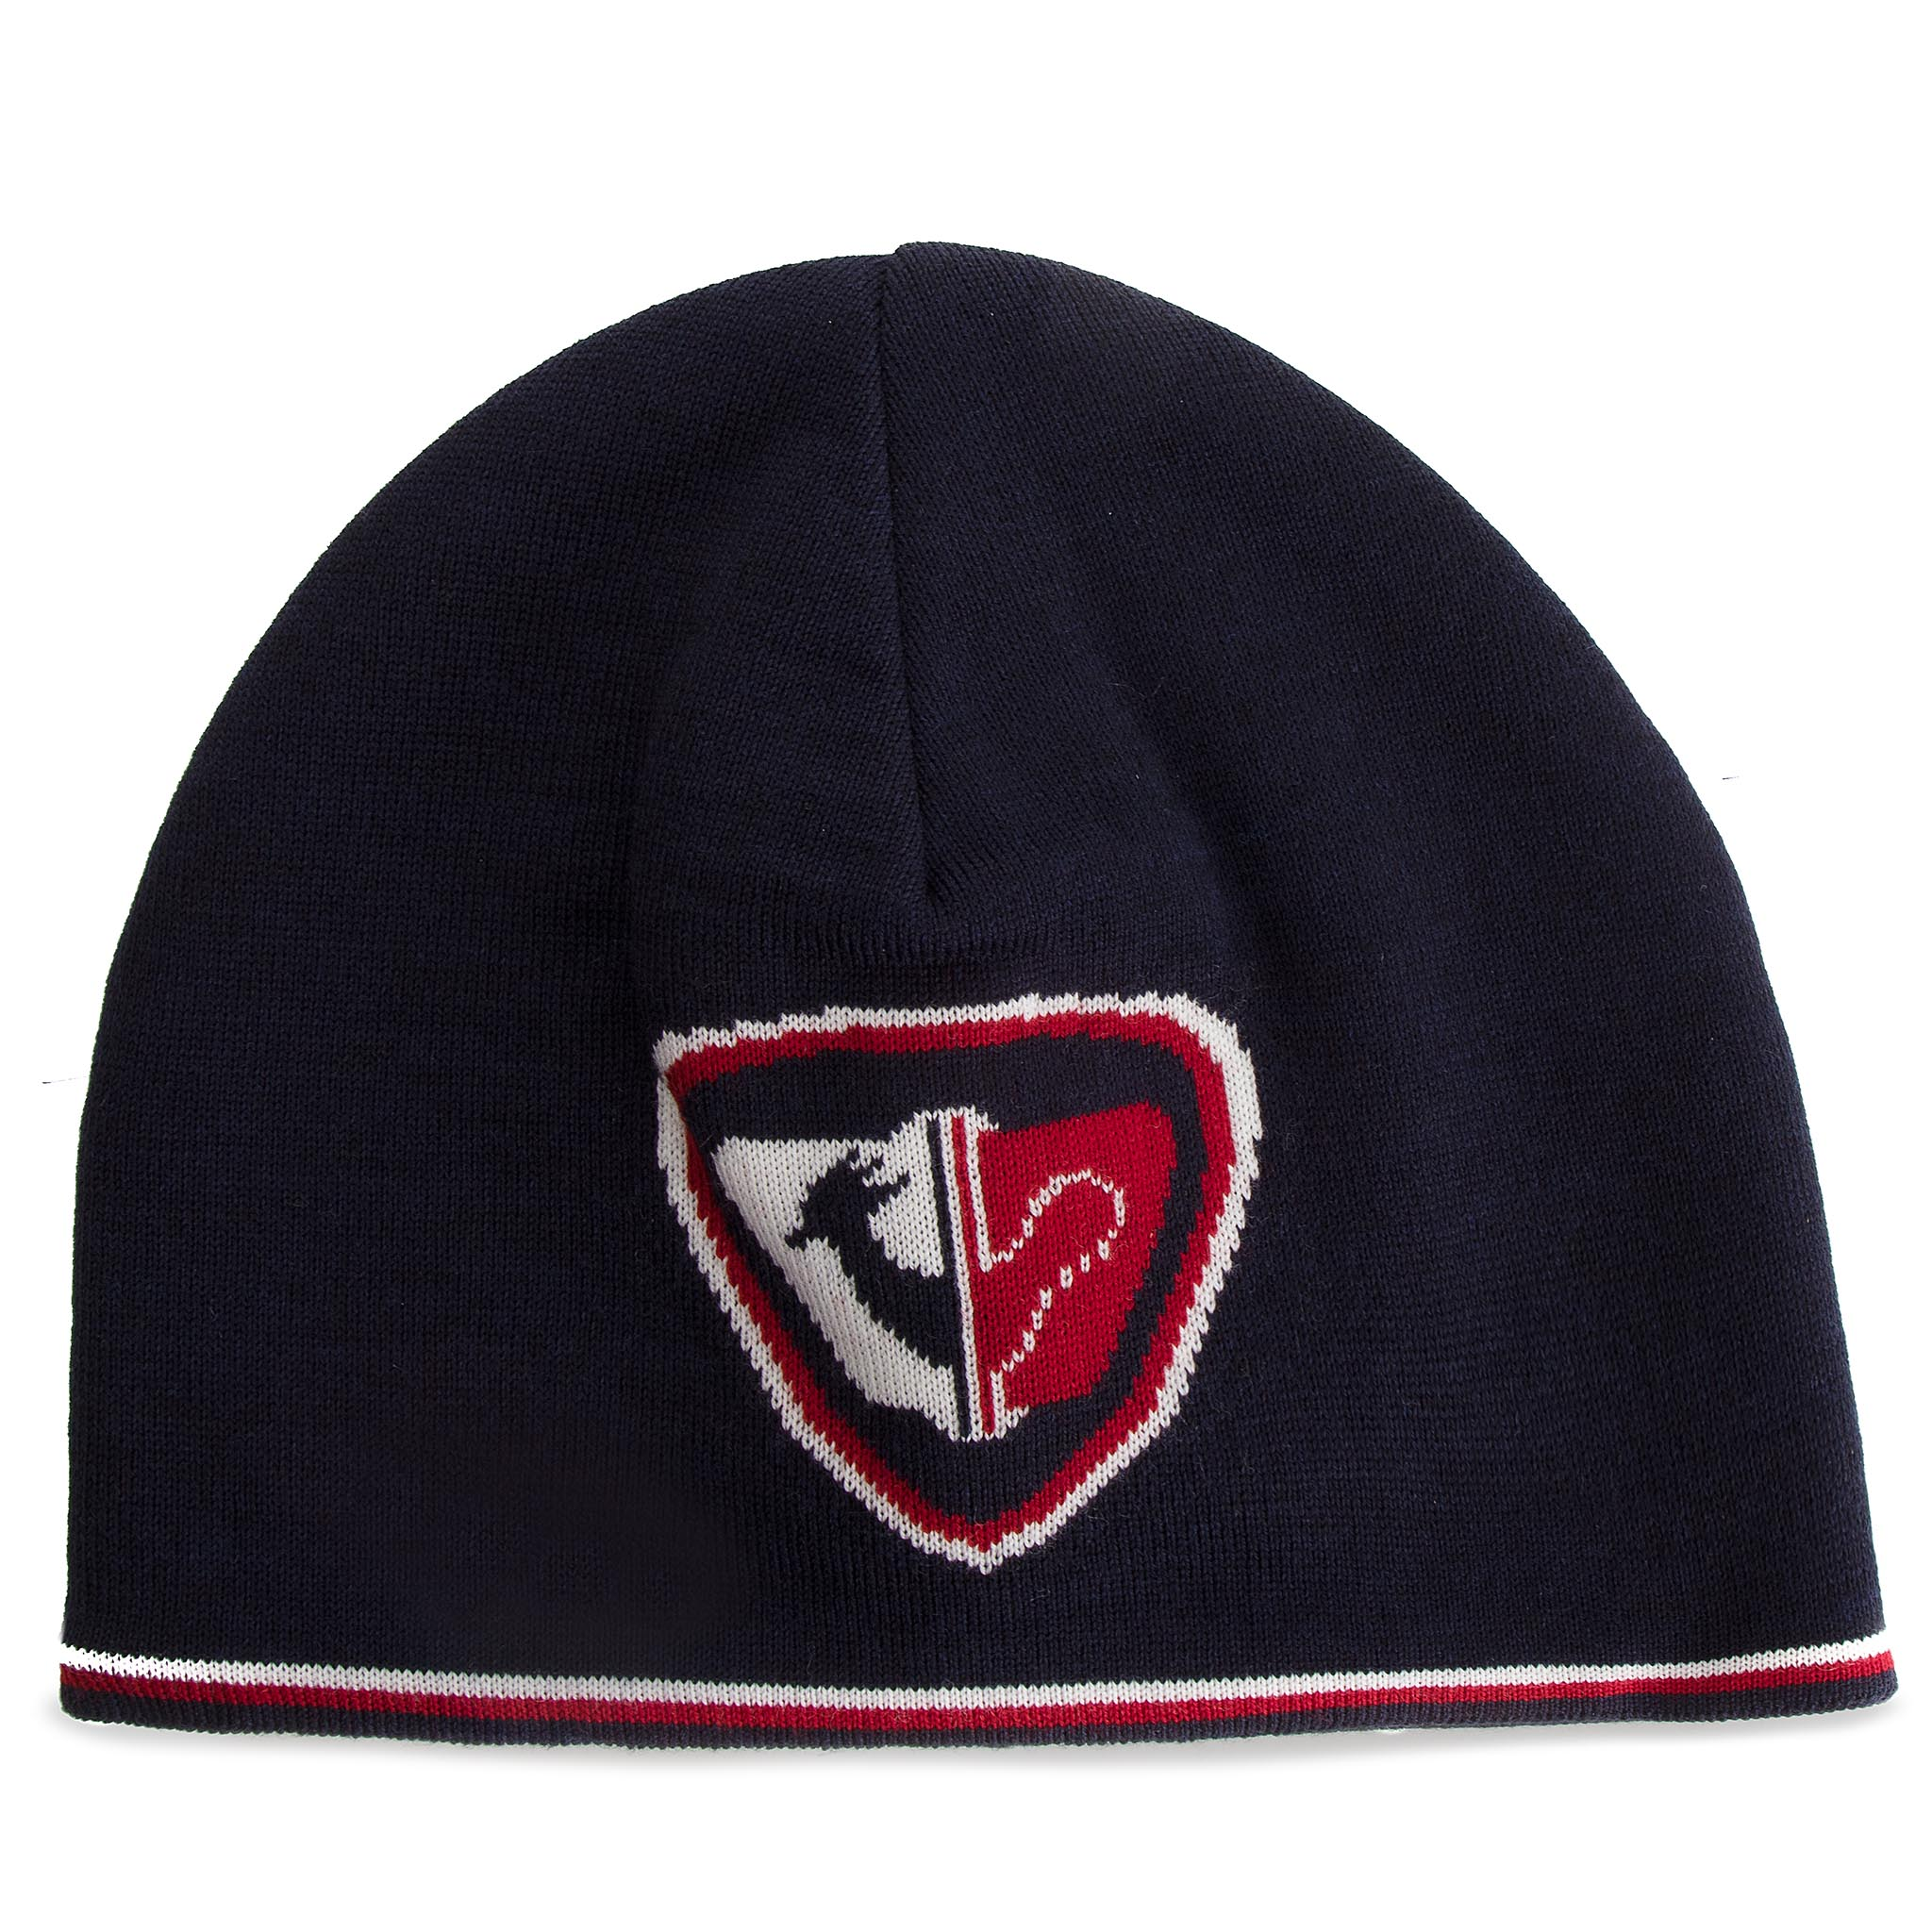 Bonnet TOMMY HILFIGER - ROSSIGNOL Thxr Football Beanie AM0AM03697 413